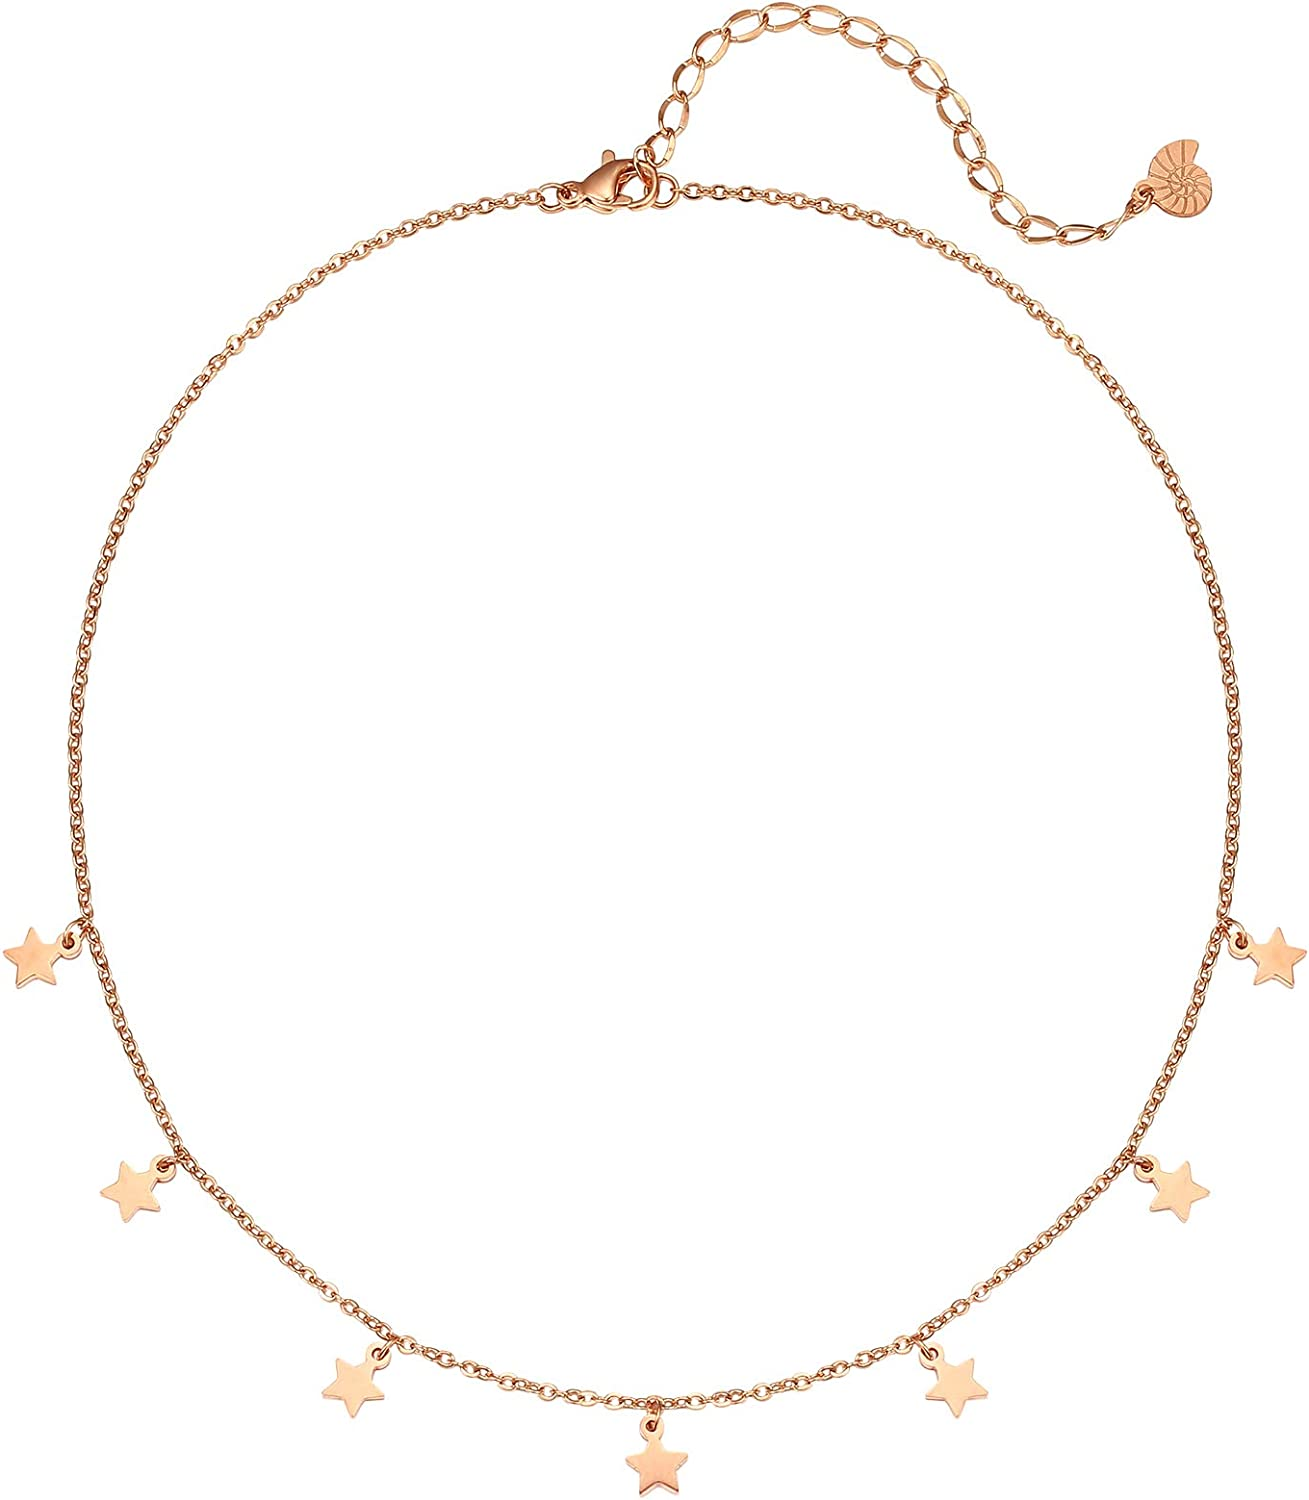 Rose Gold Delicate Choker Necklace